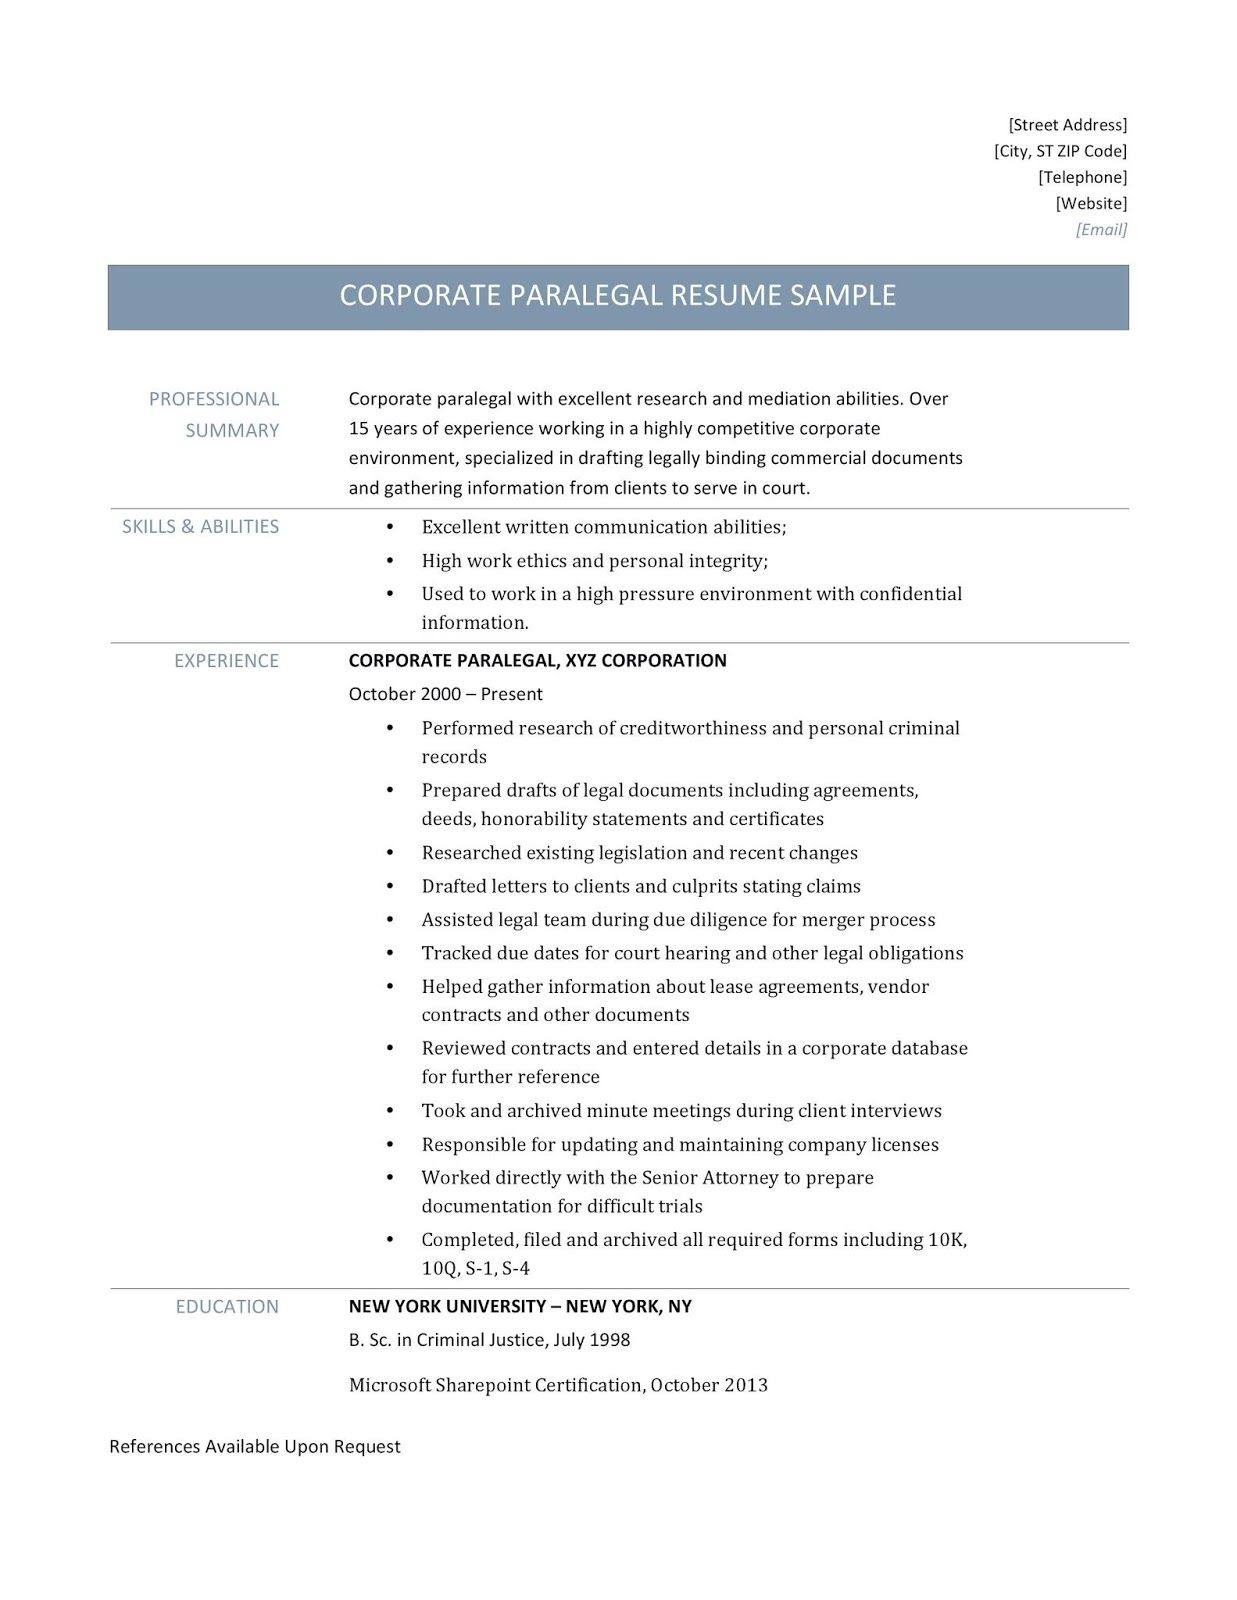 paralegal resume sample, paralegal resume samples